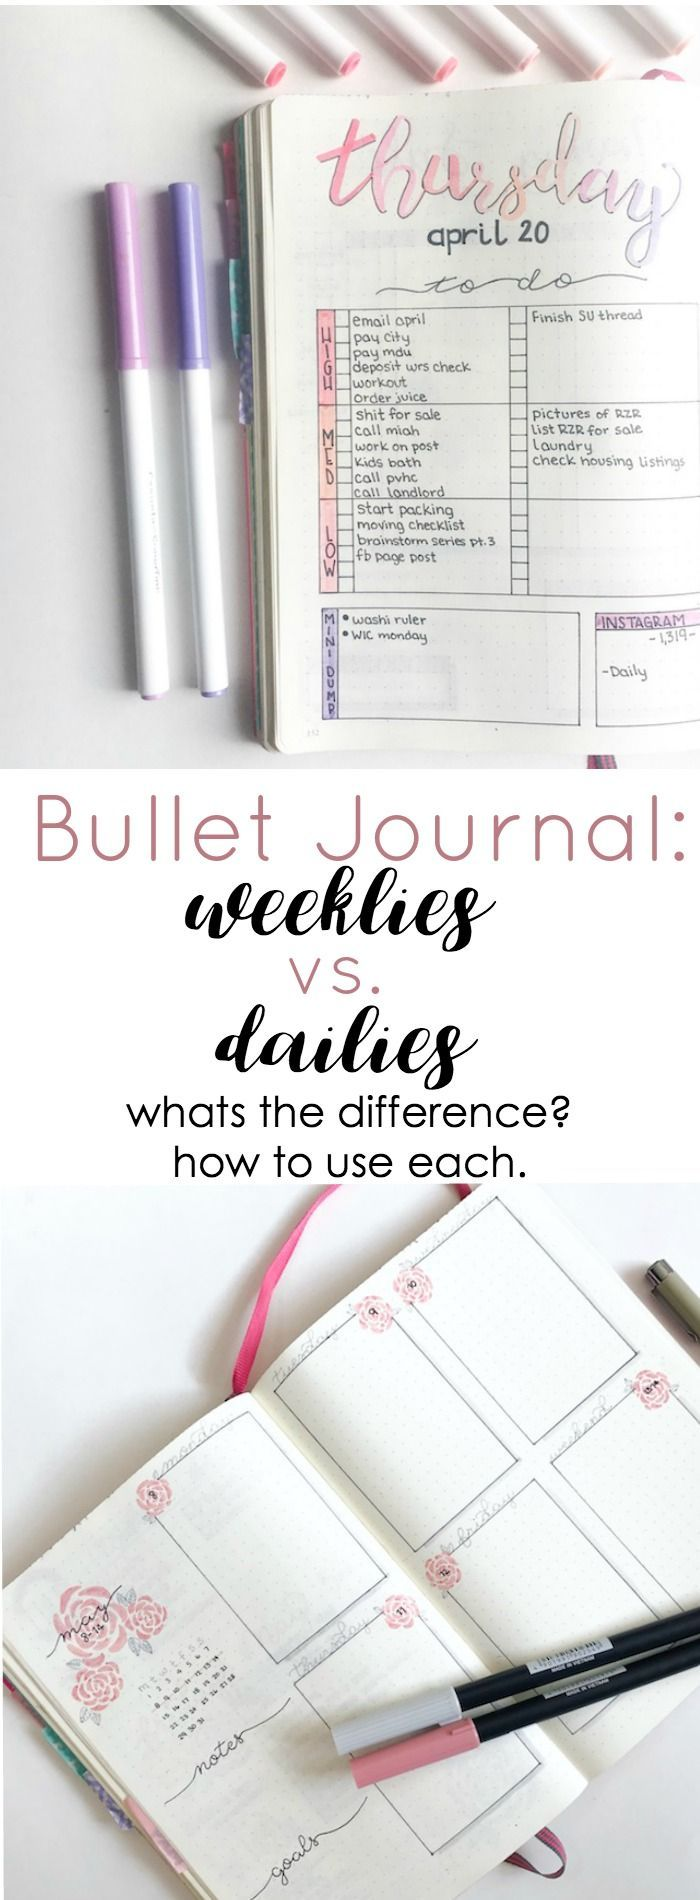 1187 Best Organization Bullet Journal Images On Pinterest